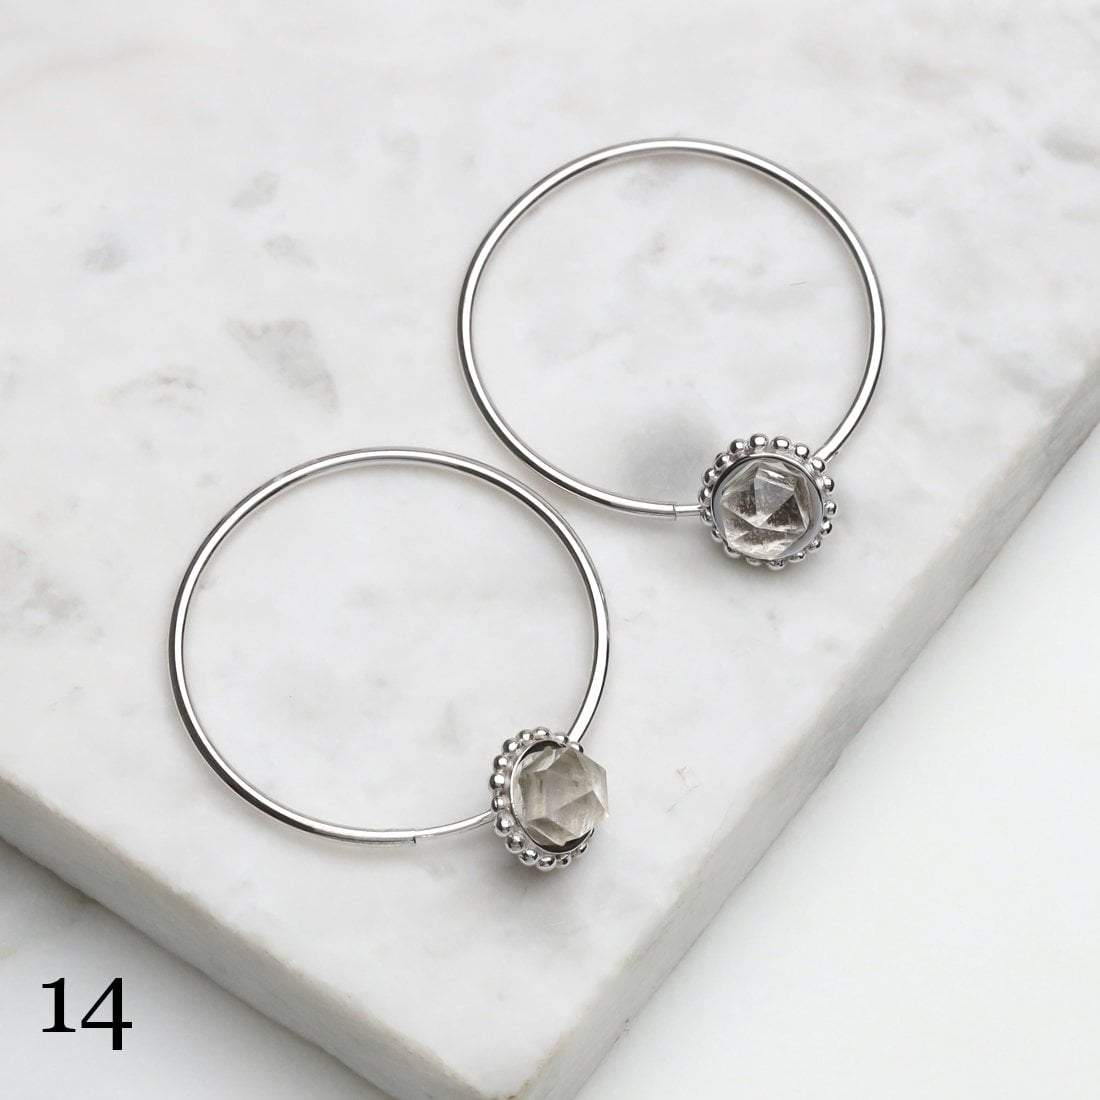 Midsummer Star Ring 14 - Crystal 12 Days of Festivities - Sample Sale 2